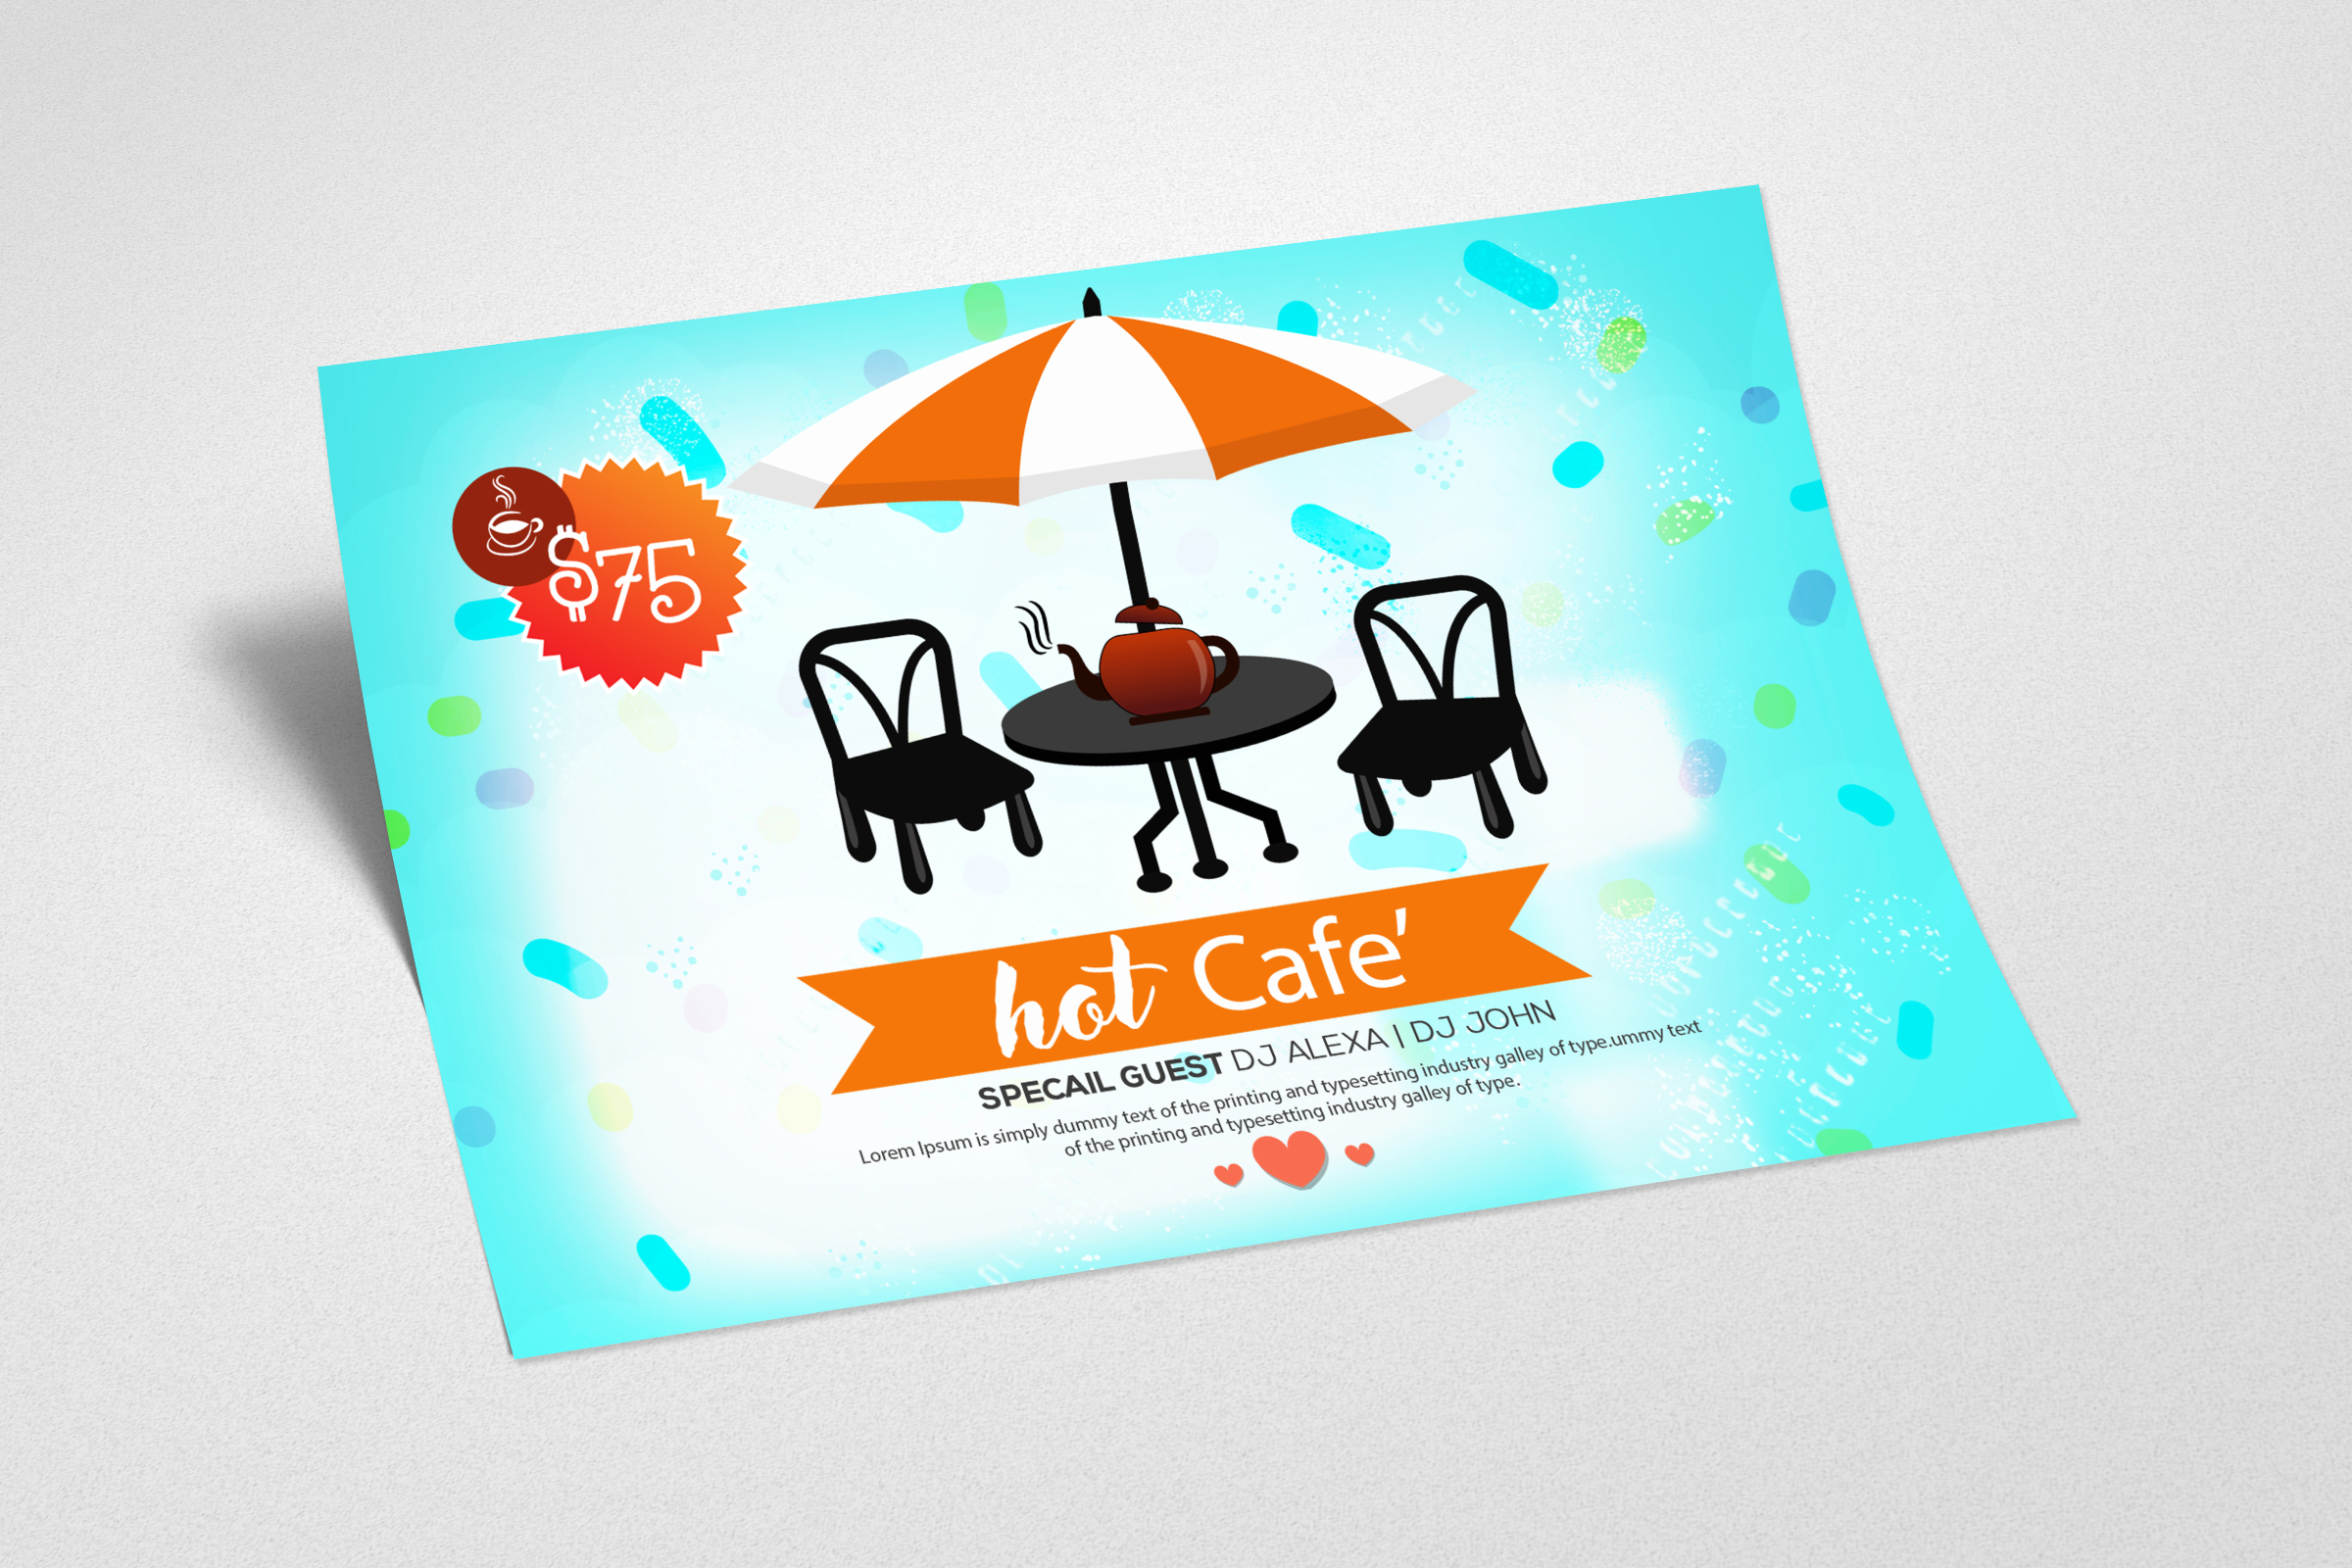 Hot Cafe Shop Card Template example image 2